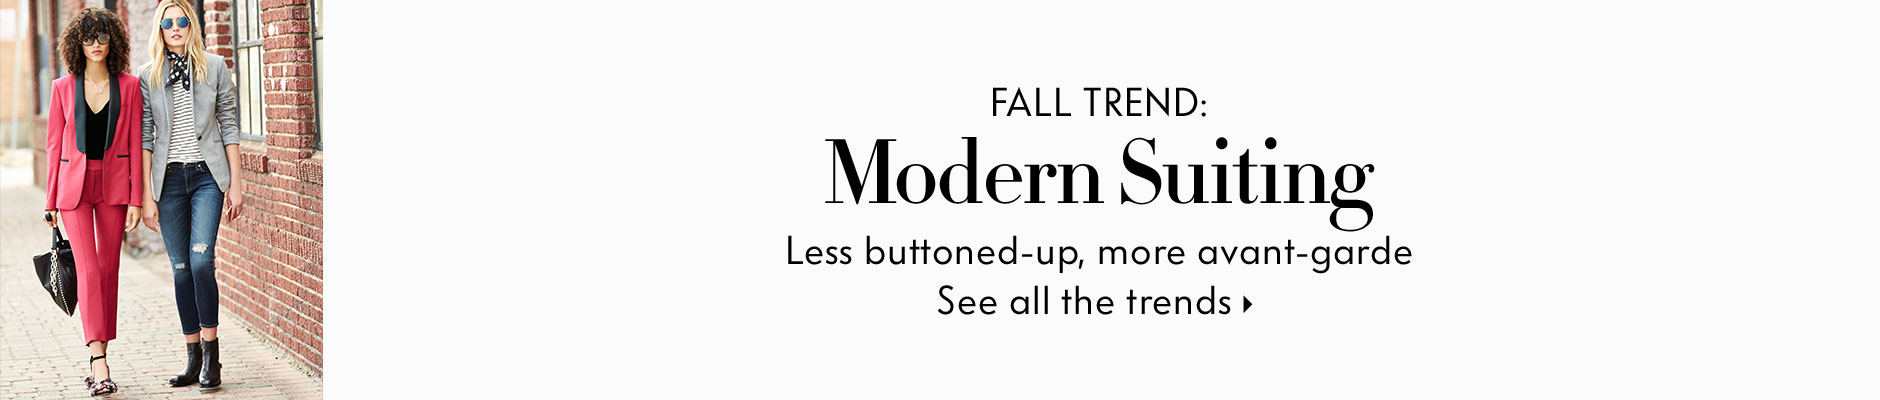 Fall Trend: Modern Suiting - Less buttoned-up, more avant-garde